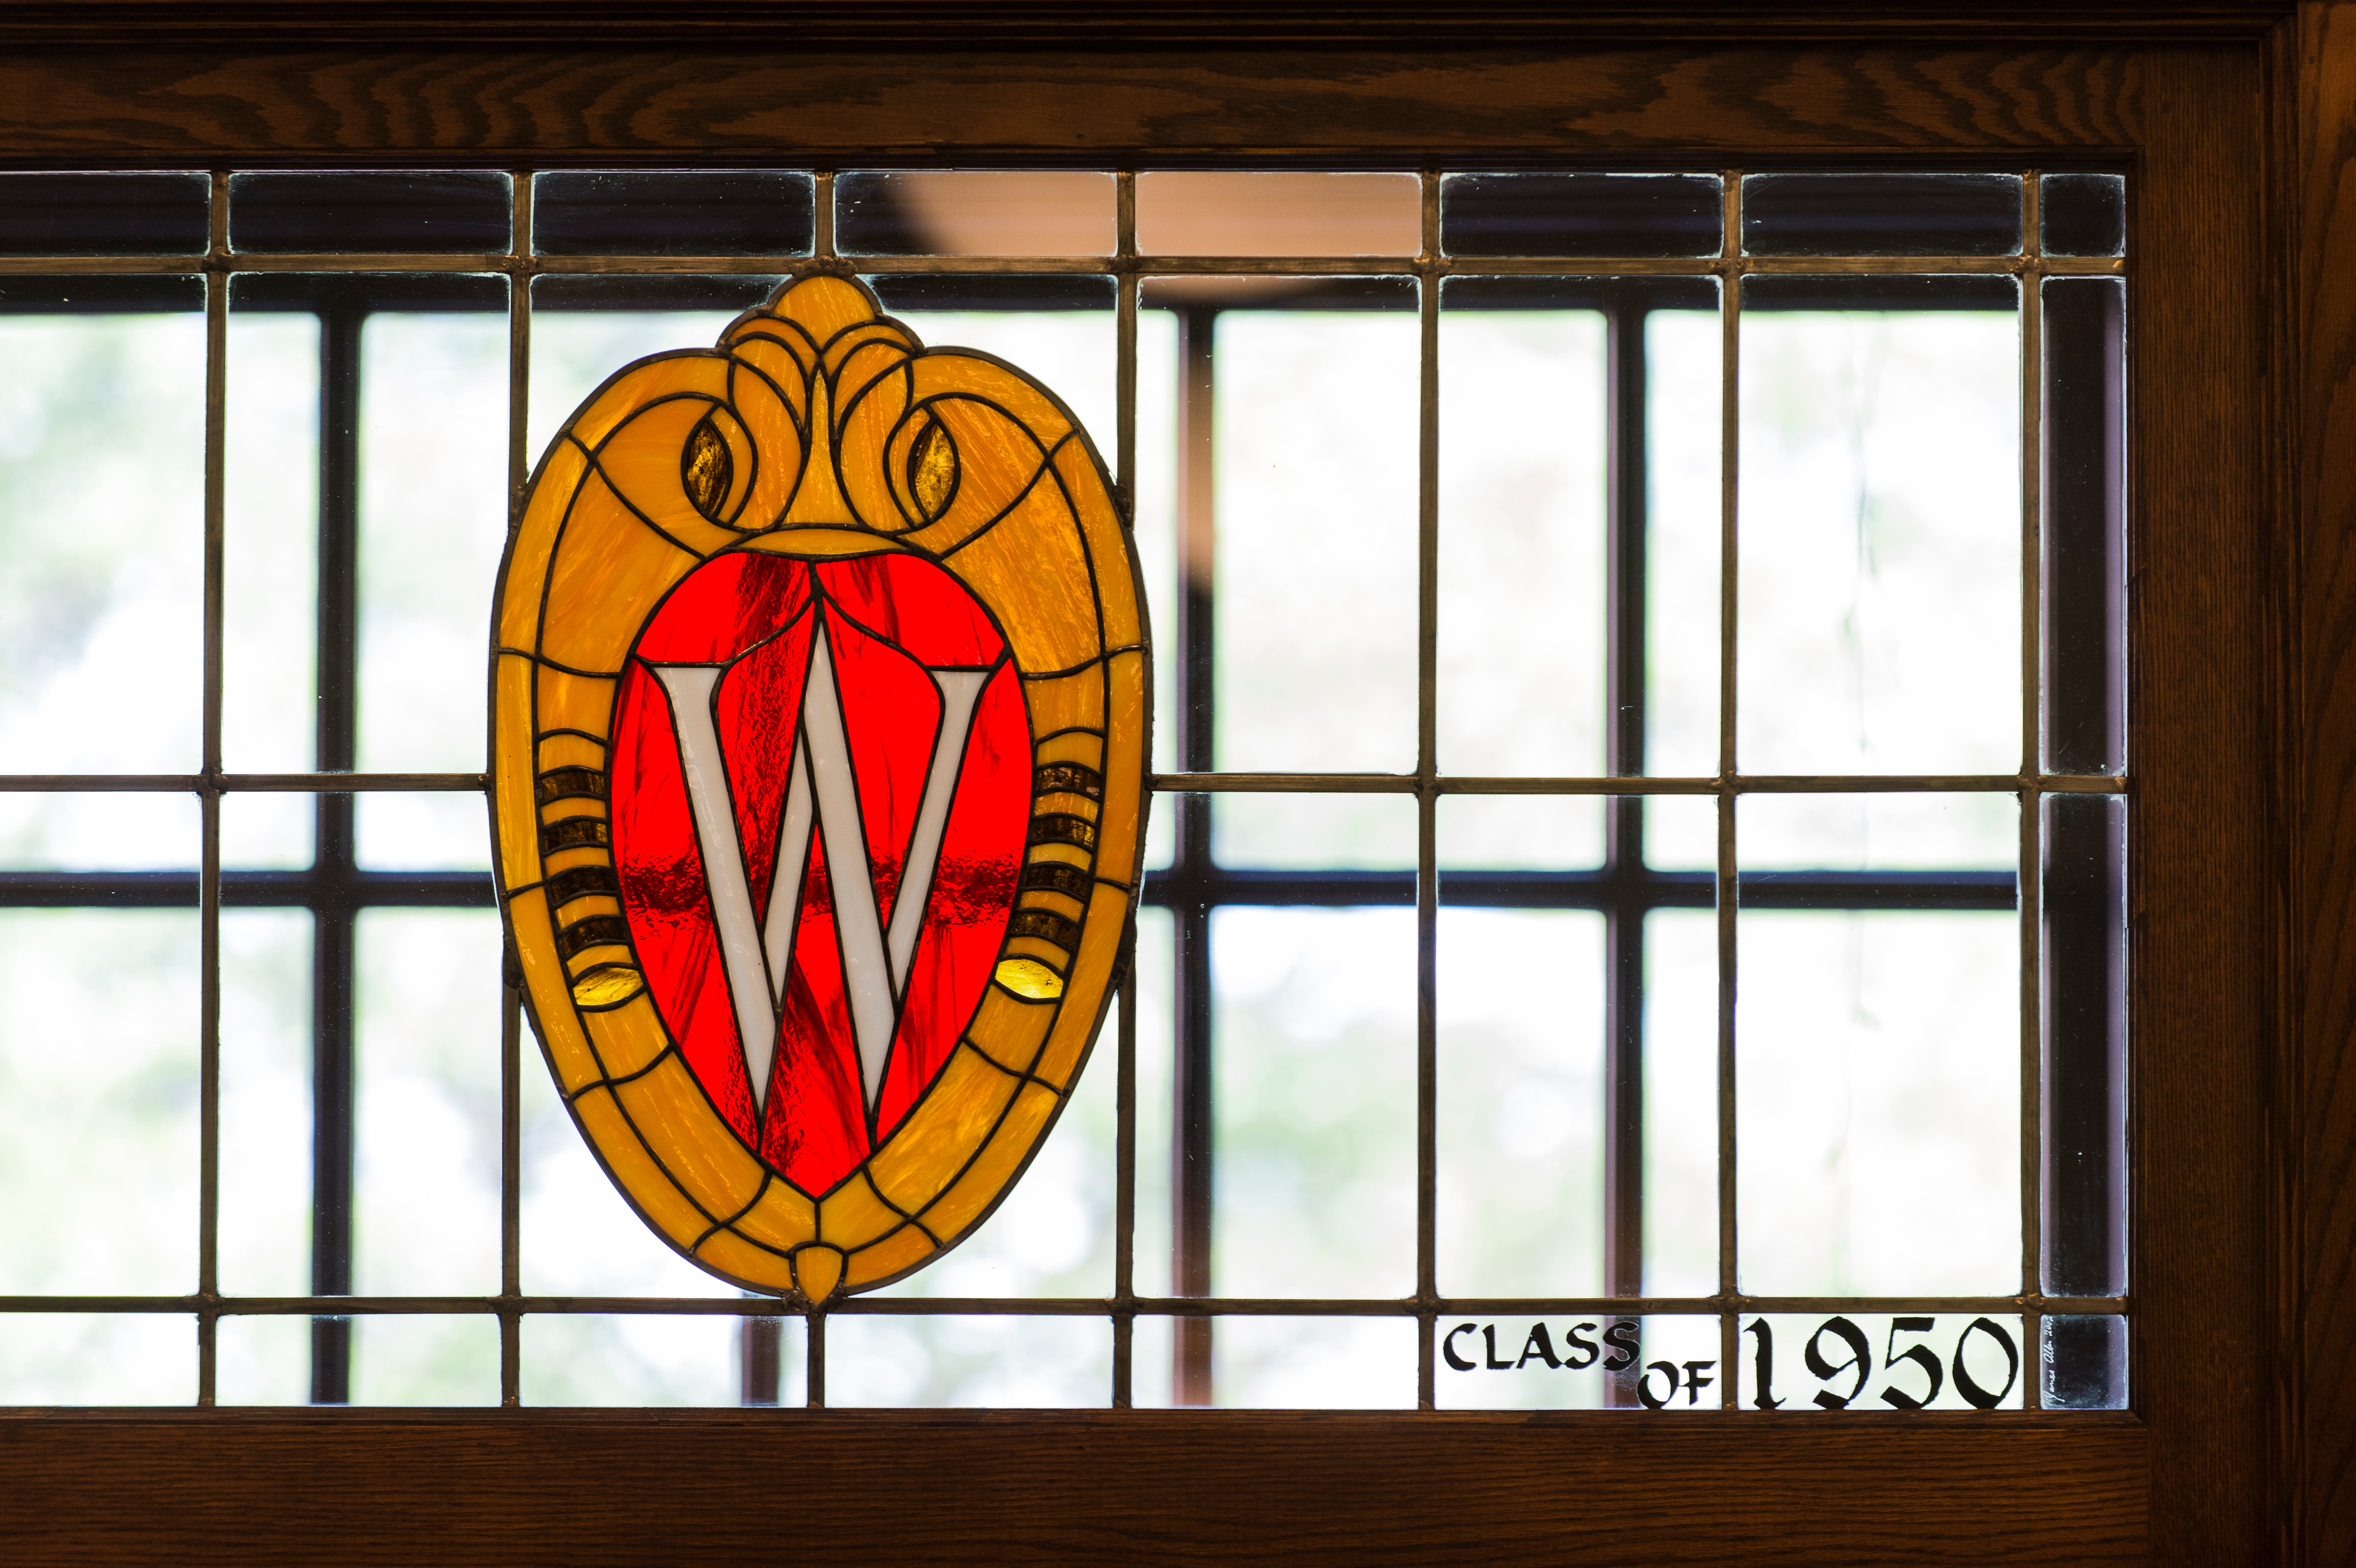 Stained glass W crest at Memorial Union